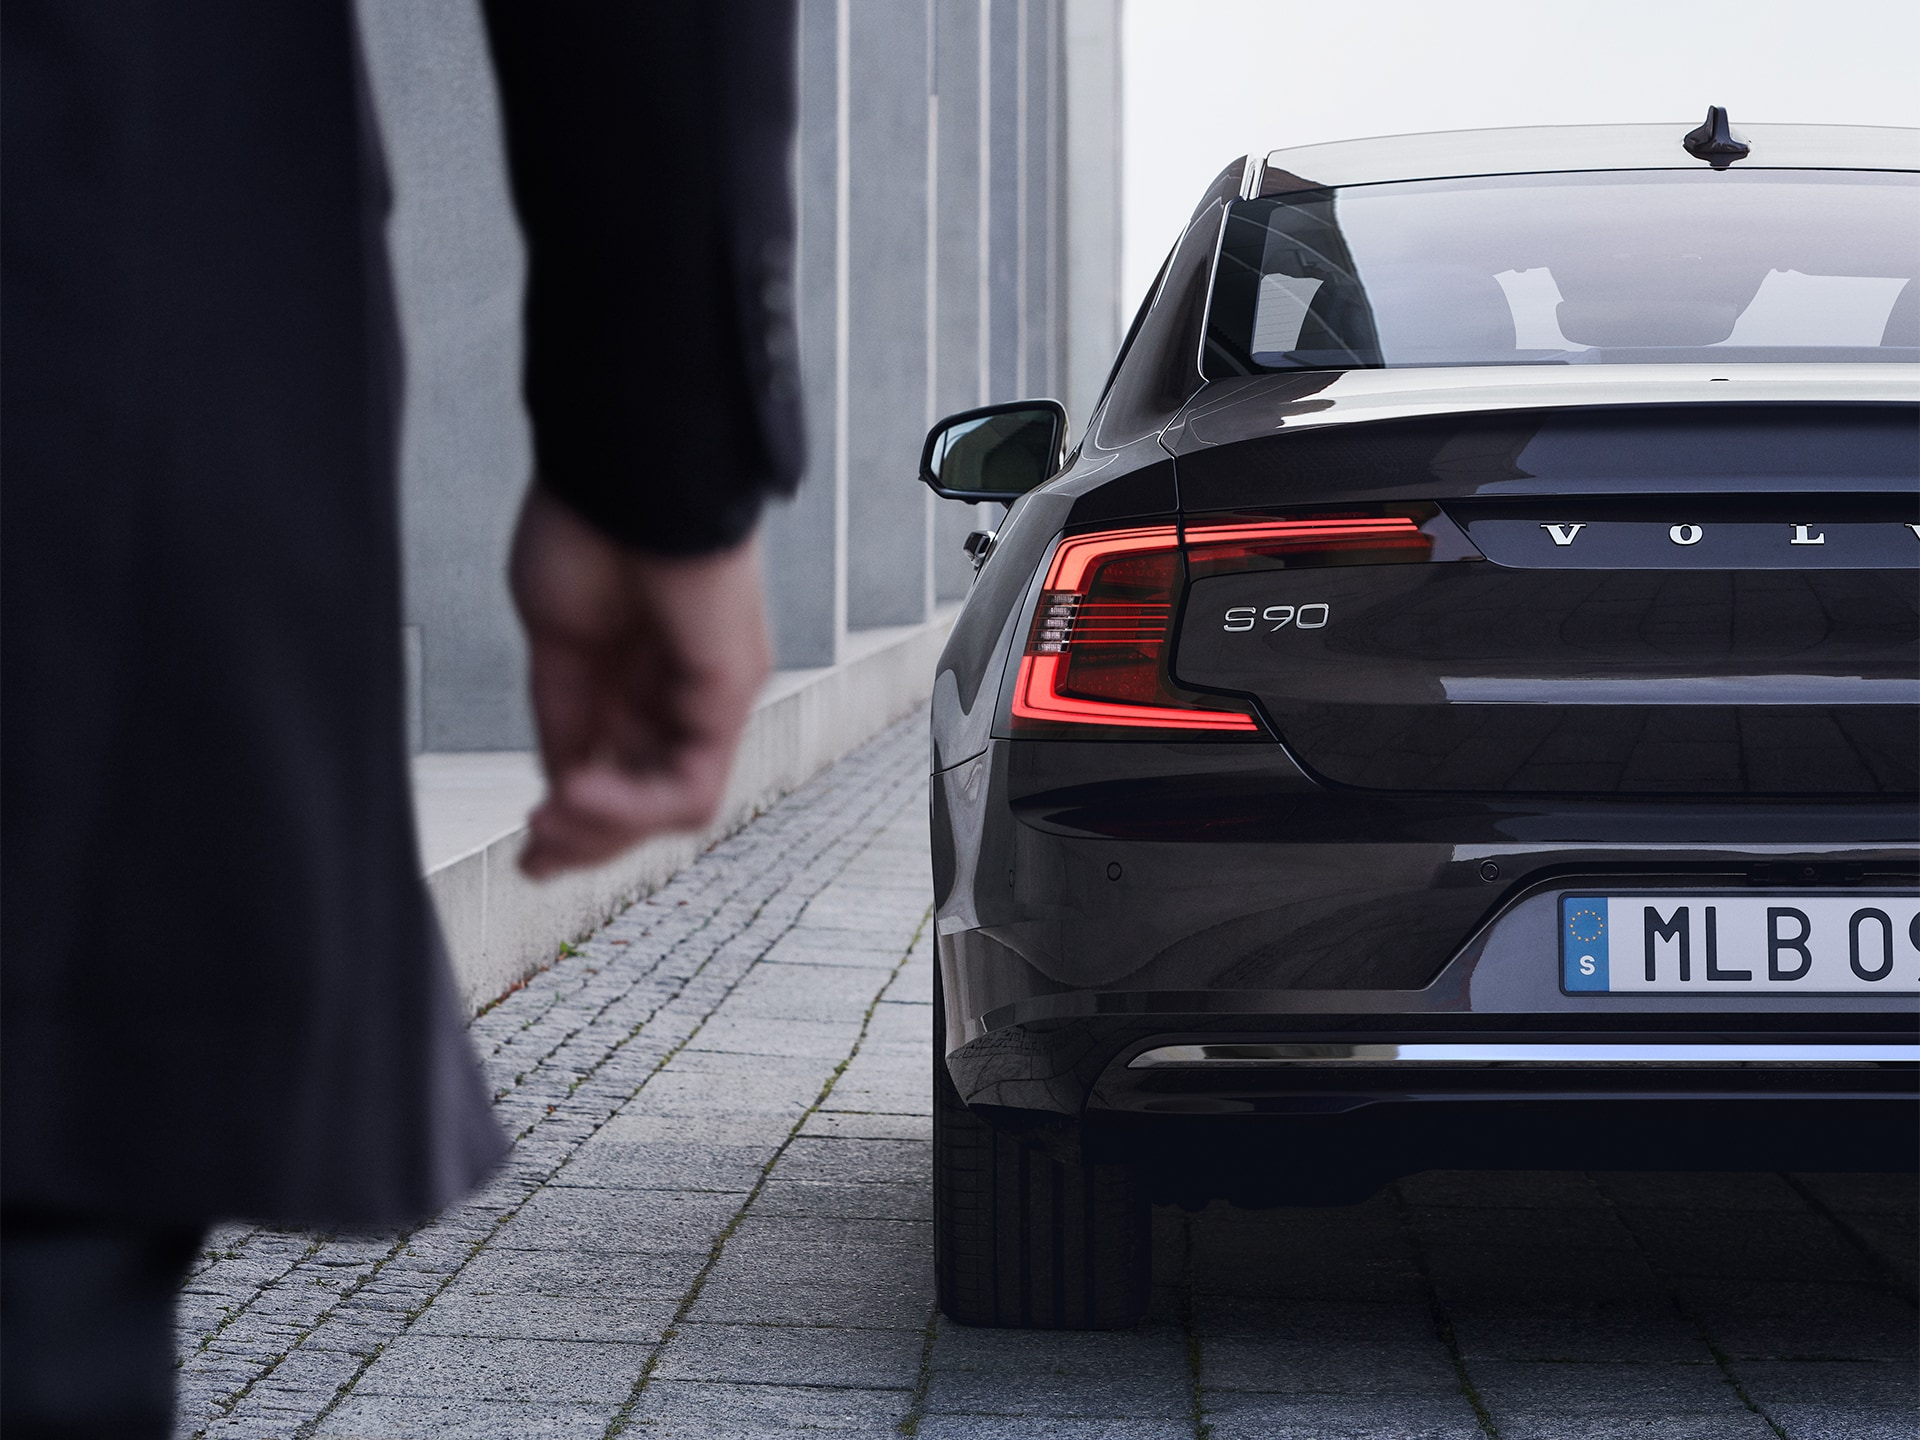 A man walks towards a black Volvo S90